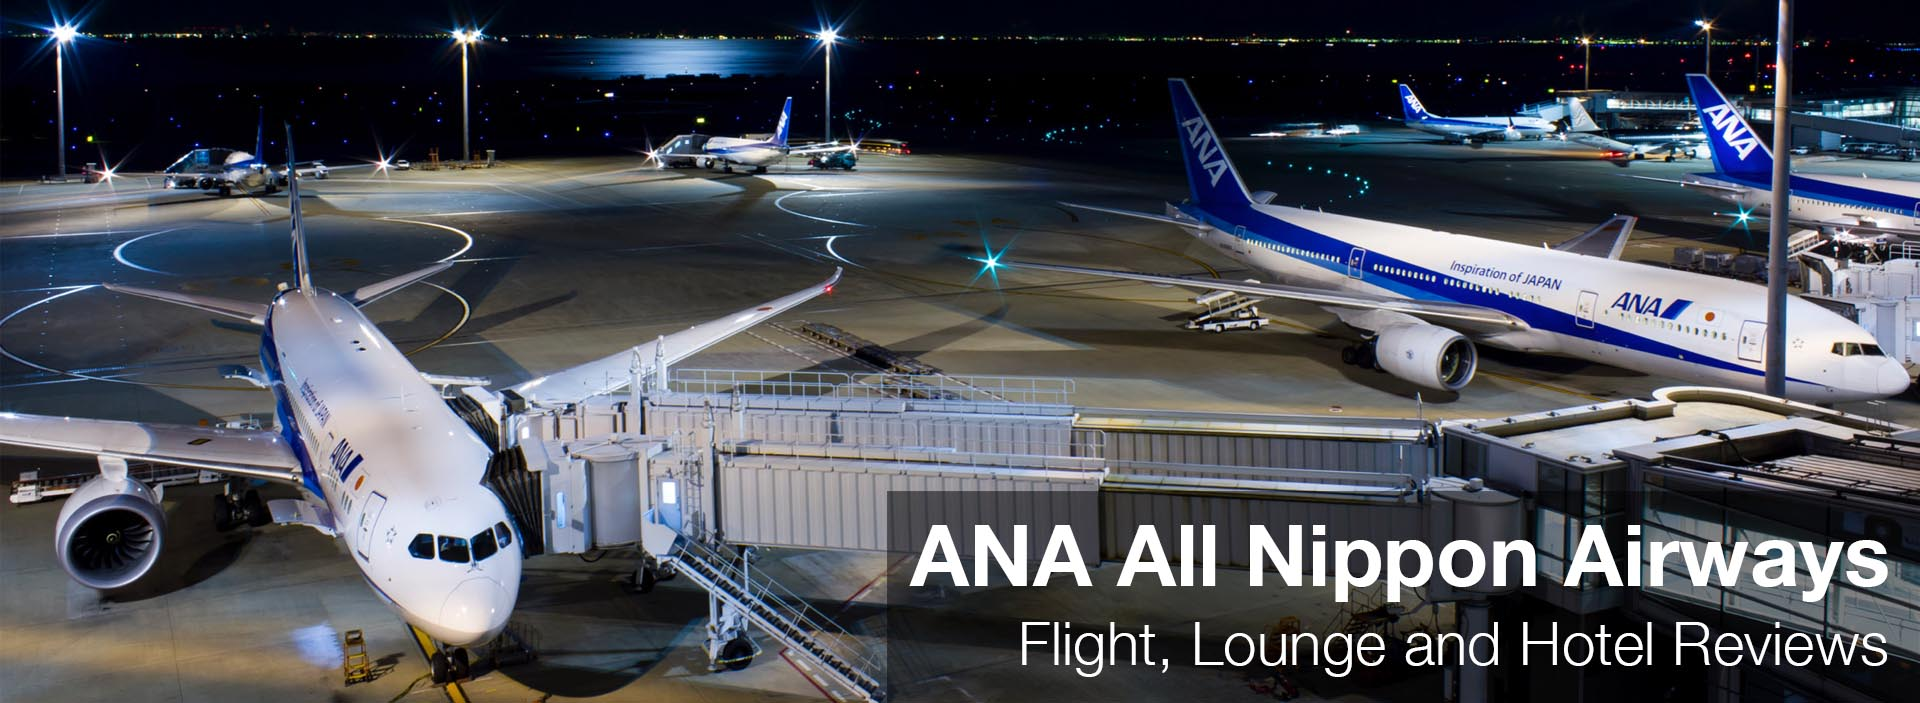 ANA All Nippon Airways: Flight, Lounge and Hotel Reviews (and Resources)